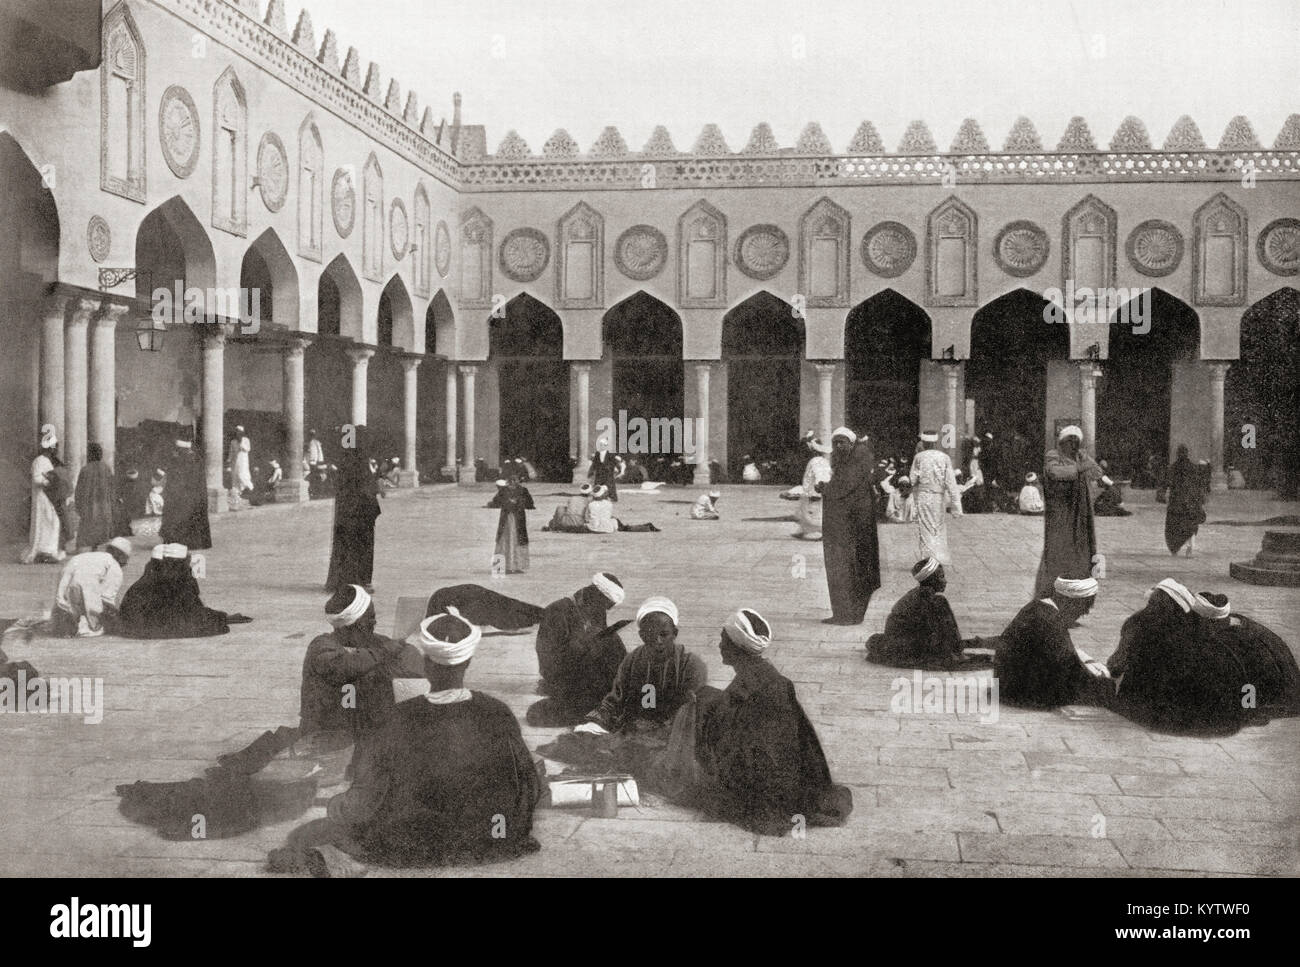 The open court of the University Mosque of Al-Azhar, Cairo, Egypt, seen here in 1880.  From The Wonders of the World, Stock Photo